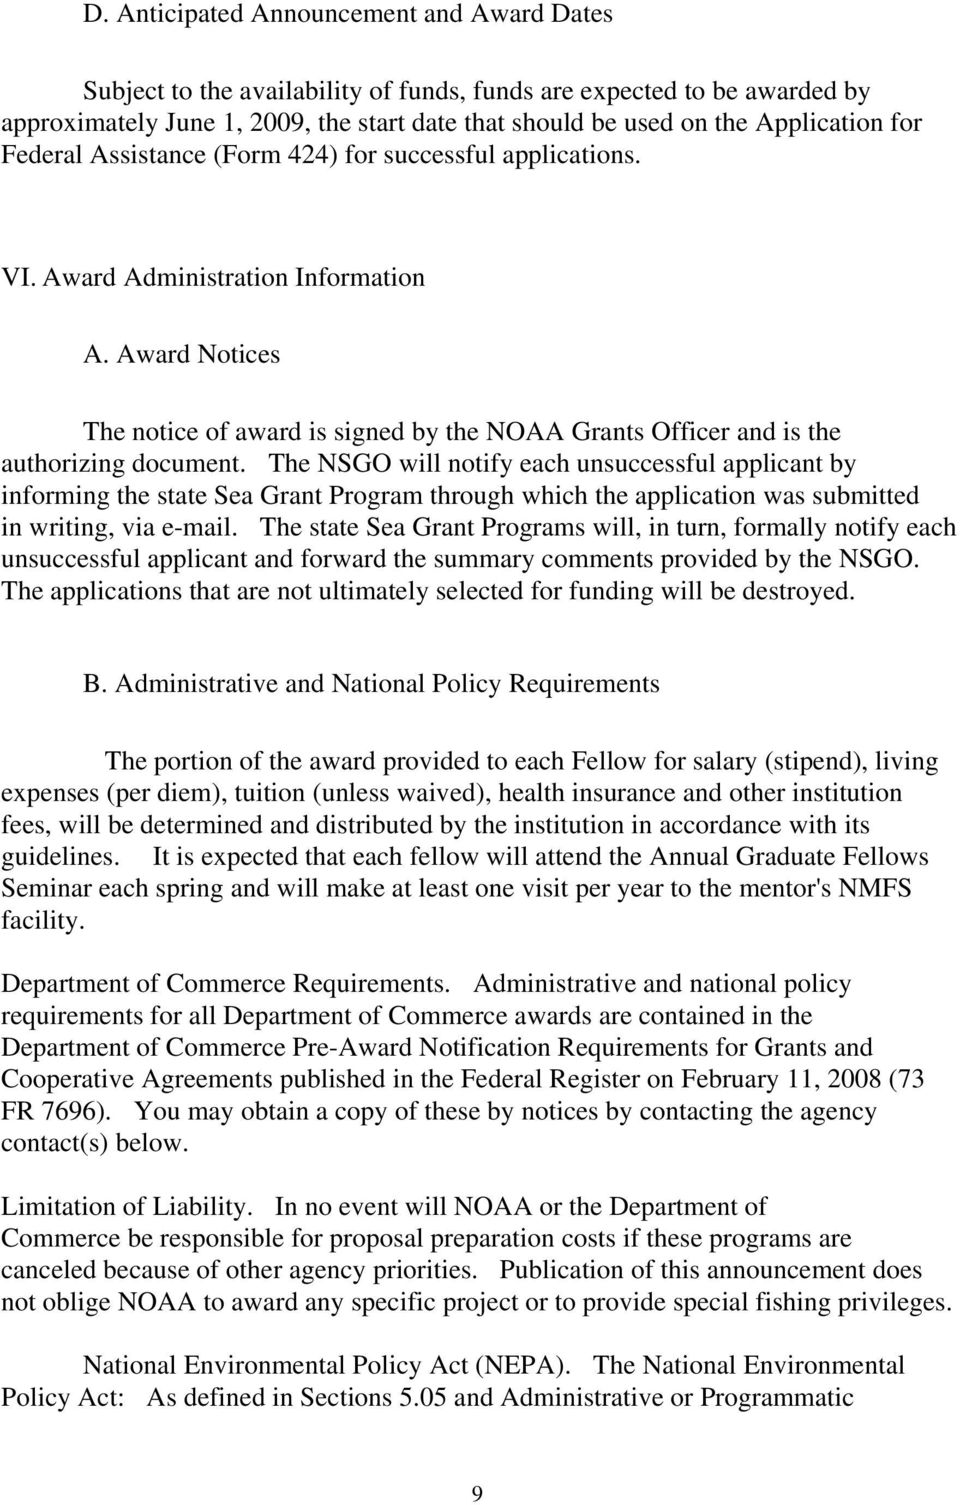 Award Notices The notice of award is signed by the NOAA Grants Officer and is the authorizing document.